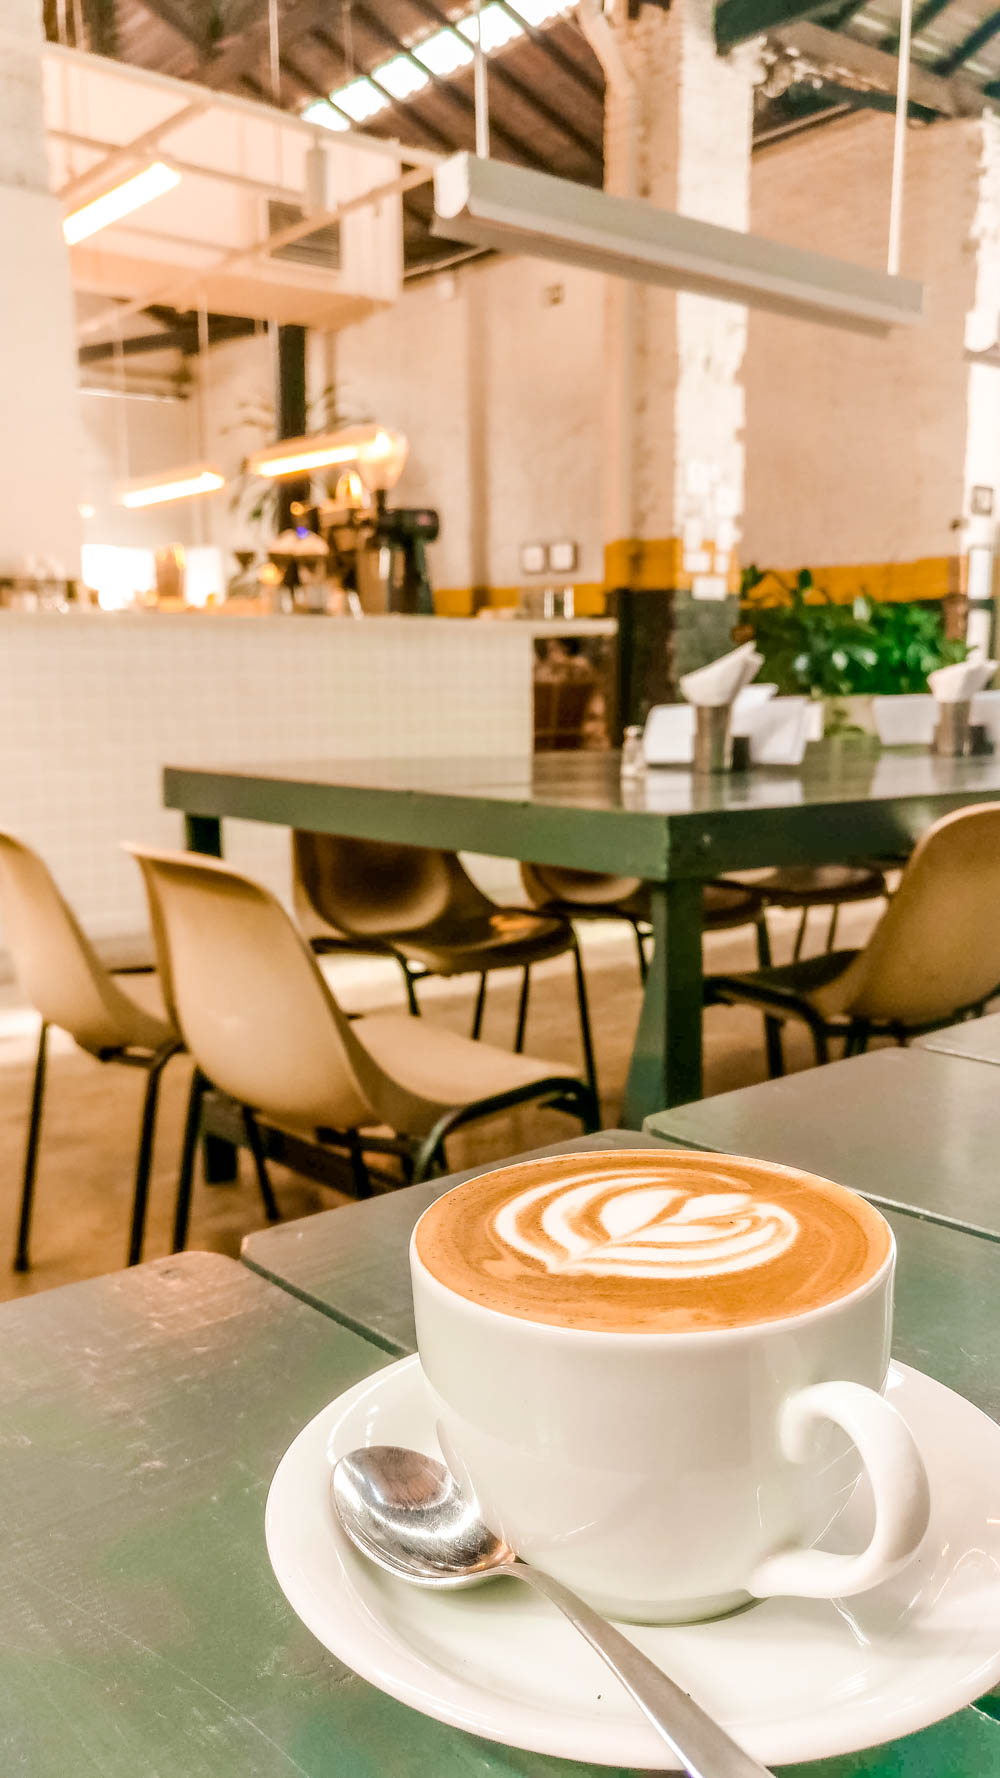 Flat white at Futuro Refeitório - Specialty coffee shop guide to São Paulo, Brazil | Aliz's Wonderland